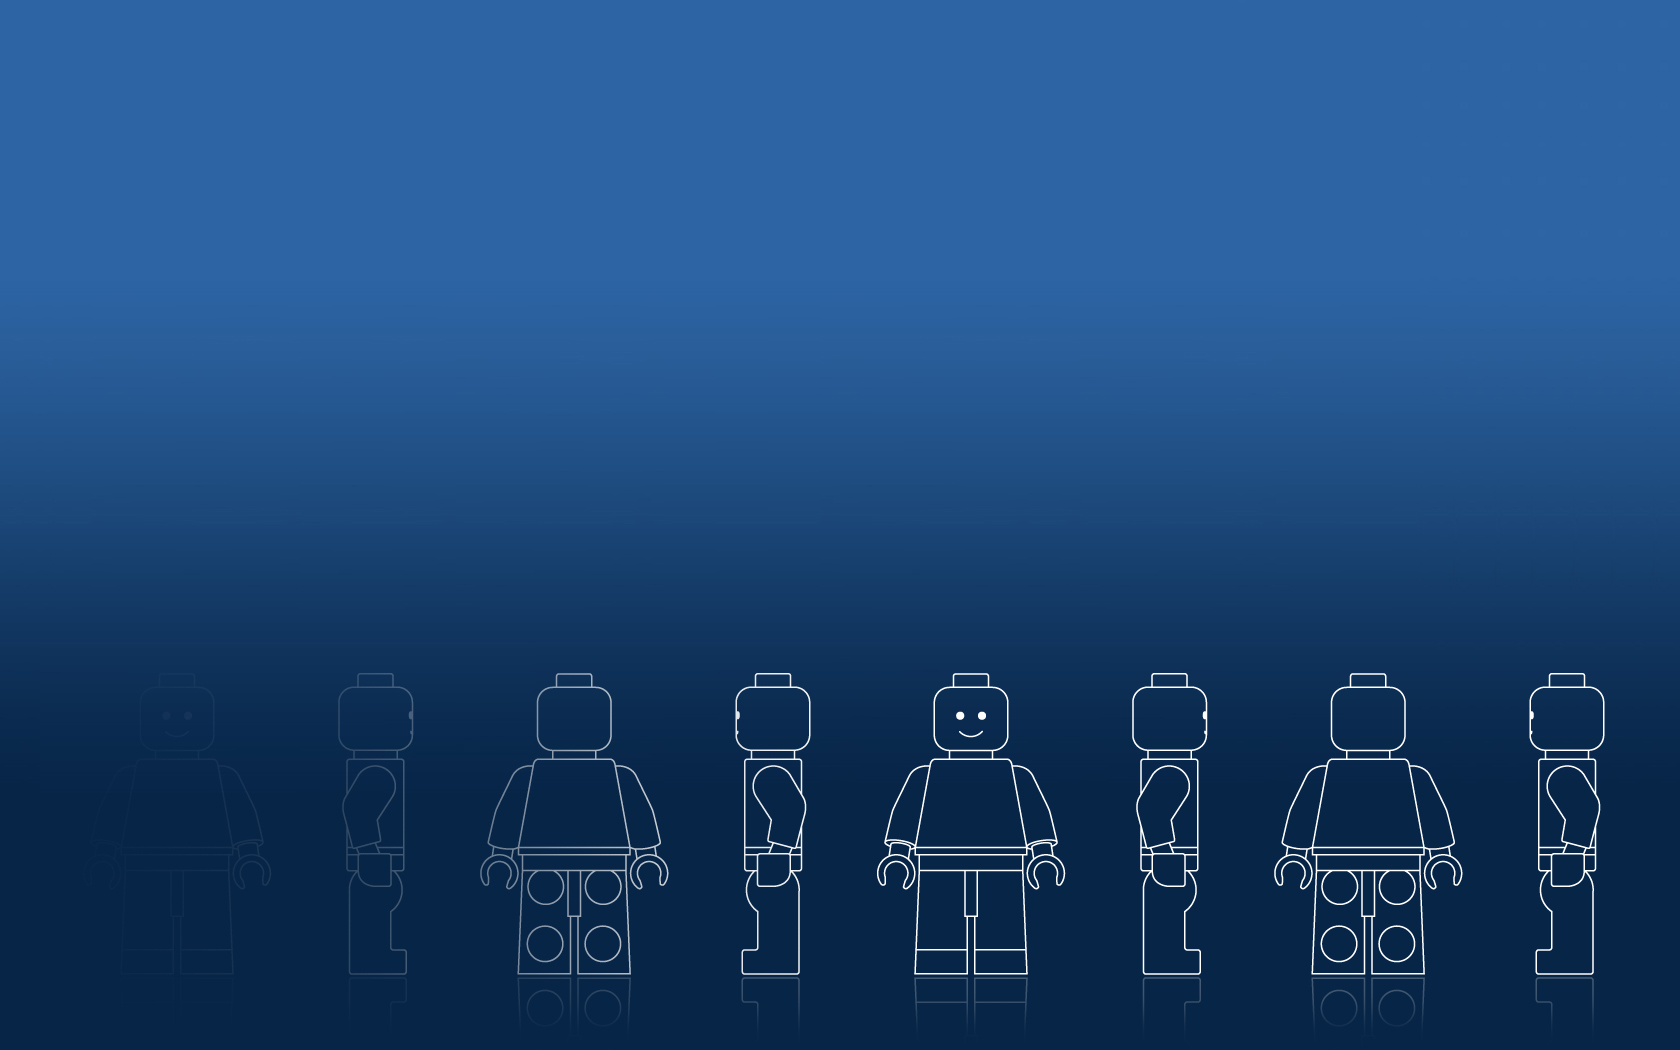 Wallpaper. Lego